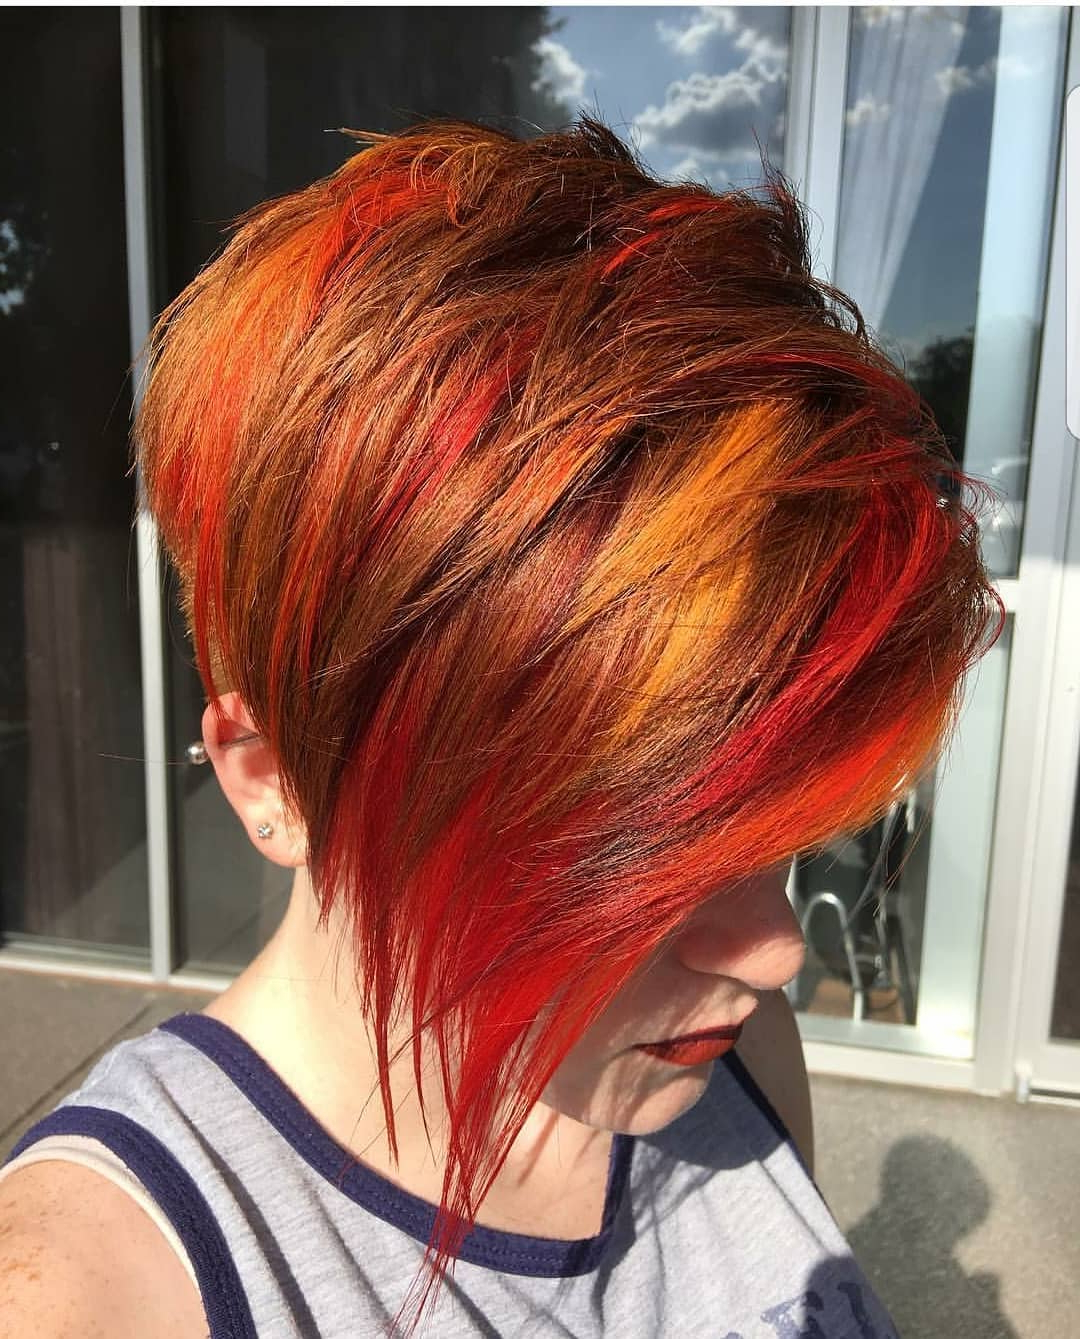 10 Beautiful Asymmetrical Short Pixie Haircuts & Hairstyles With Regard To Trendy Pixie Haircuts With Vibrant Highlights (Gallery 10 of 20)